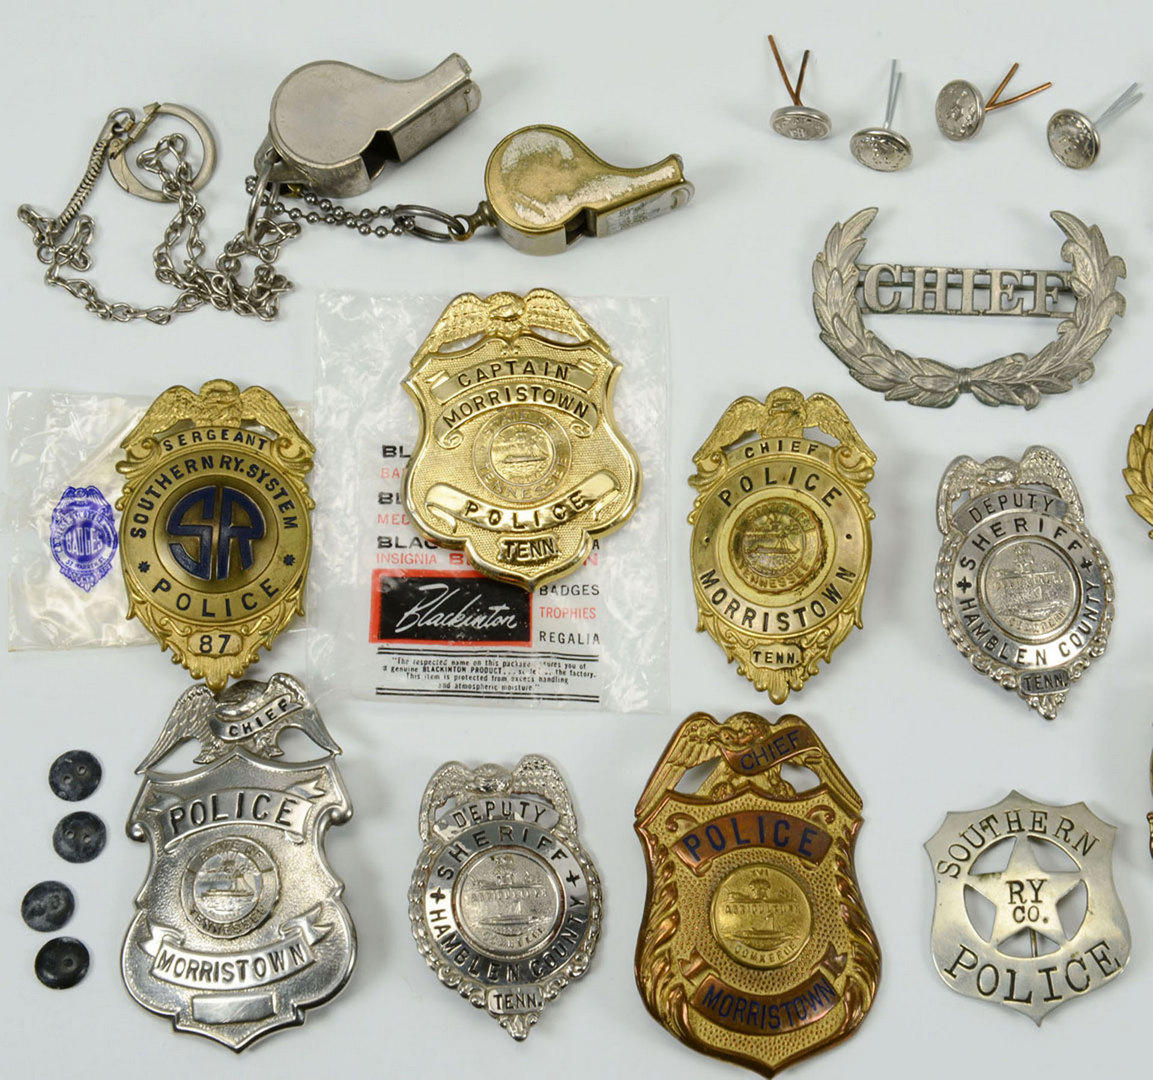 Lot 529: Group of Policemen Badges and Accoutrements